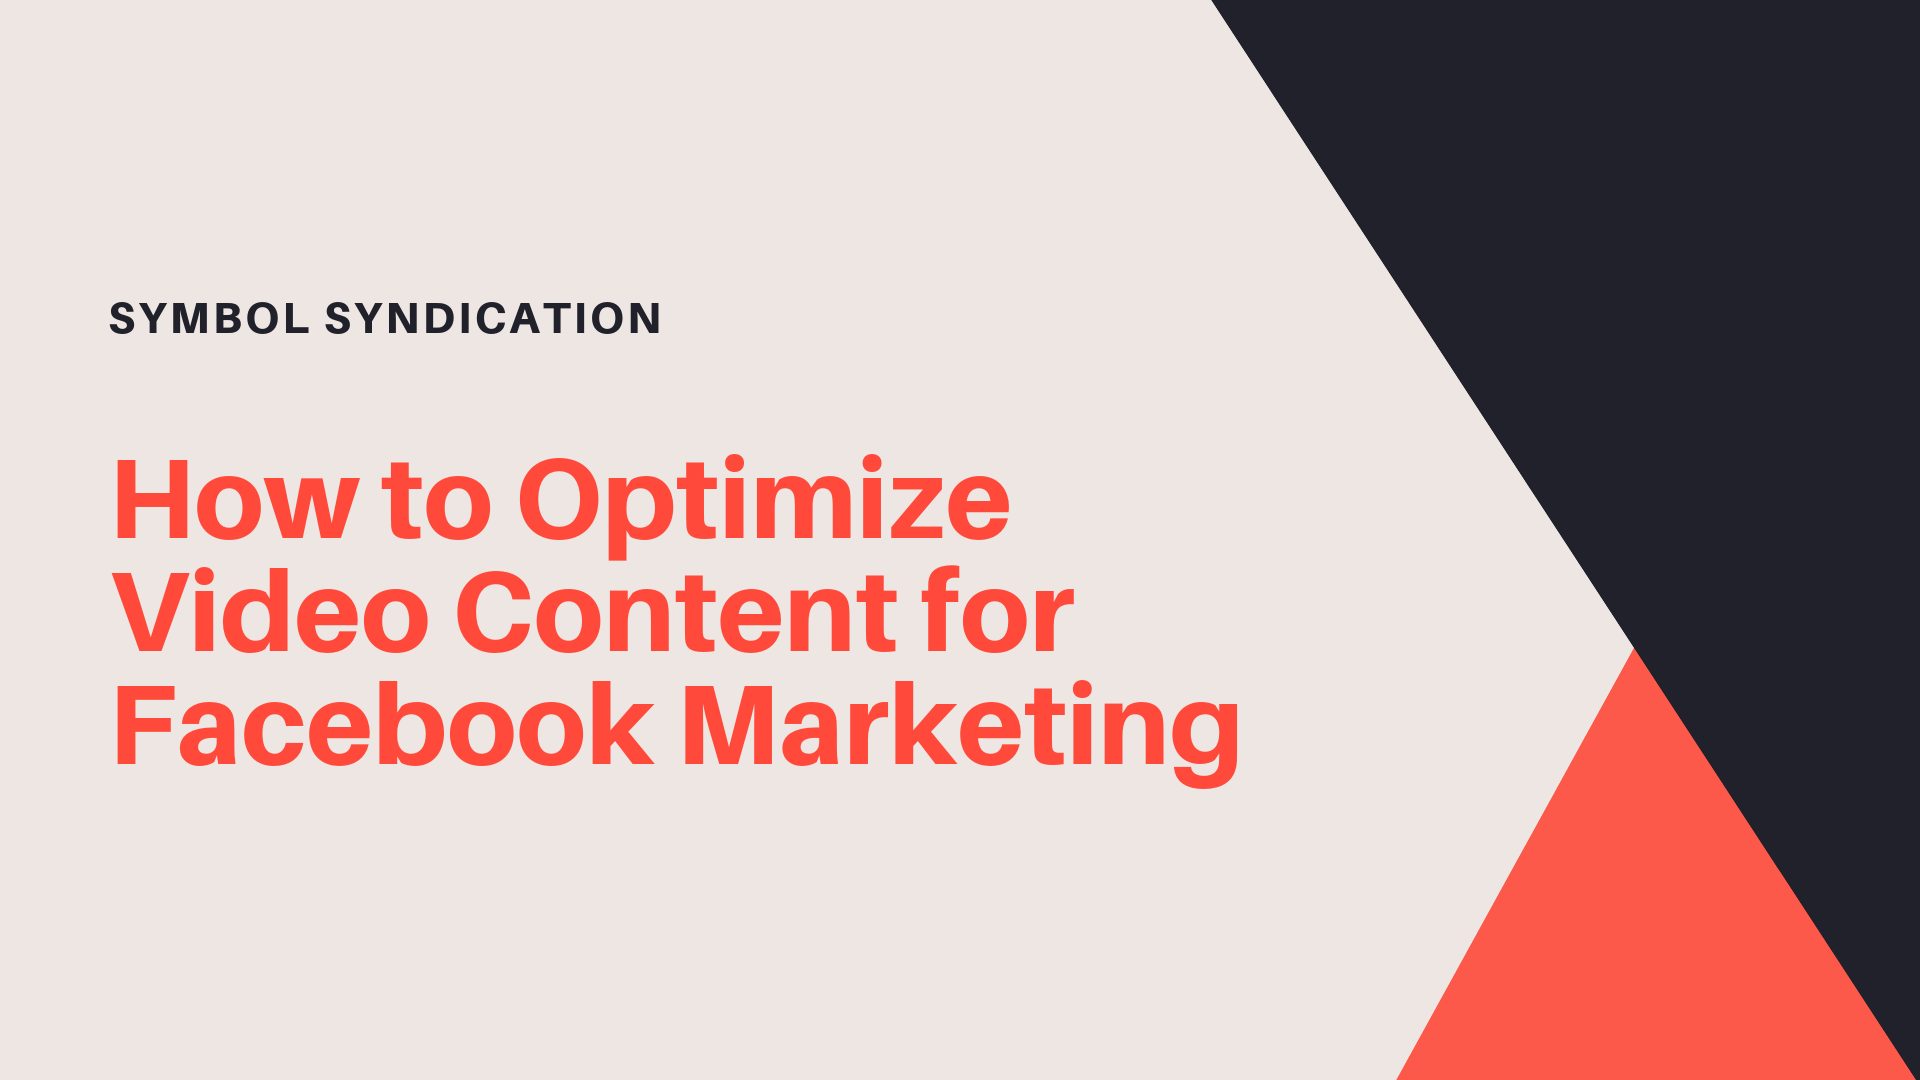 Optimize Video Content Facebook Marketing